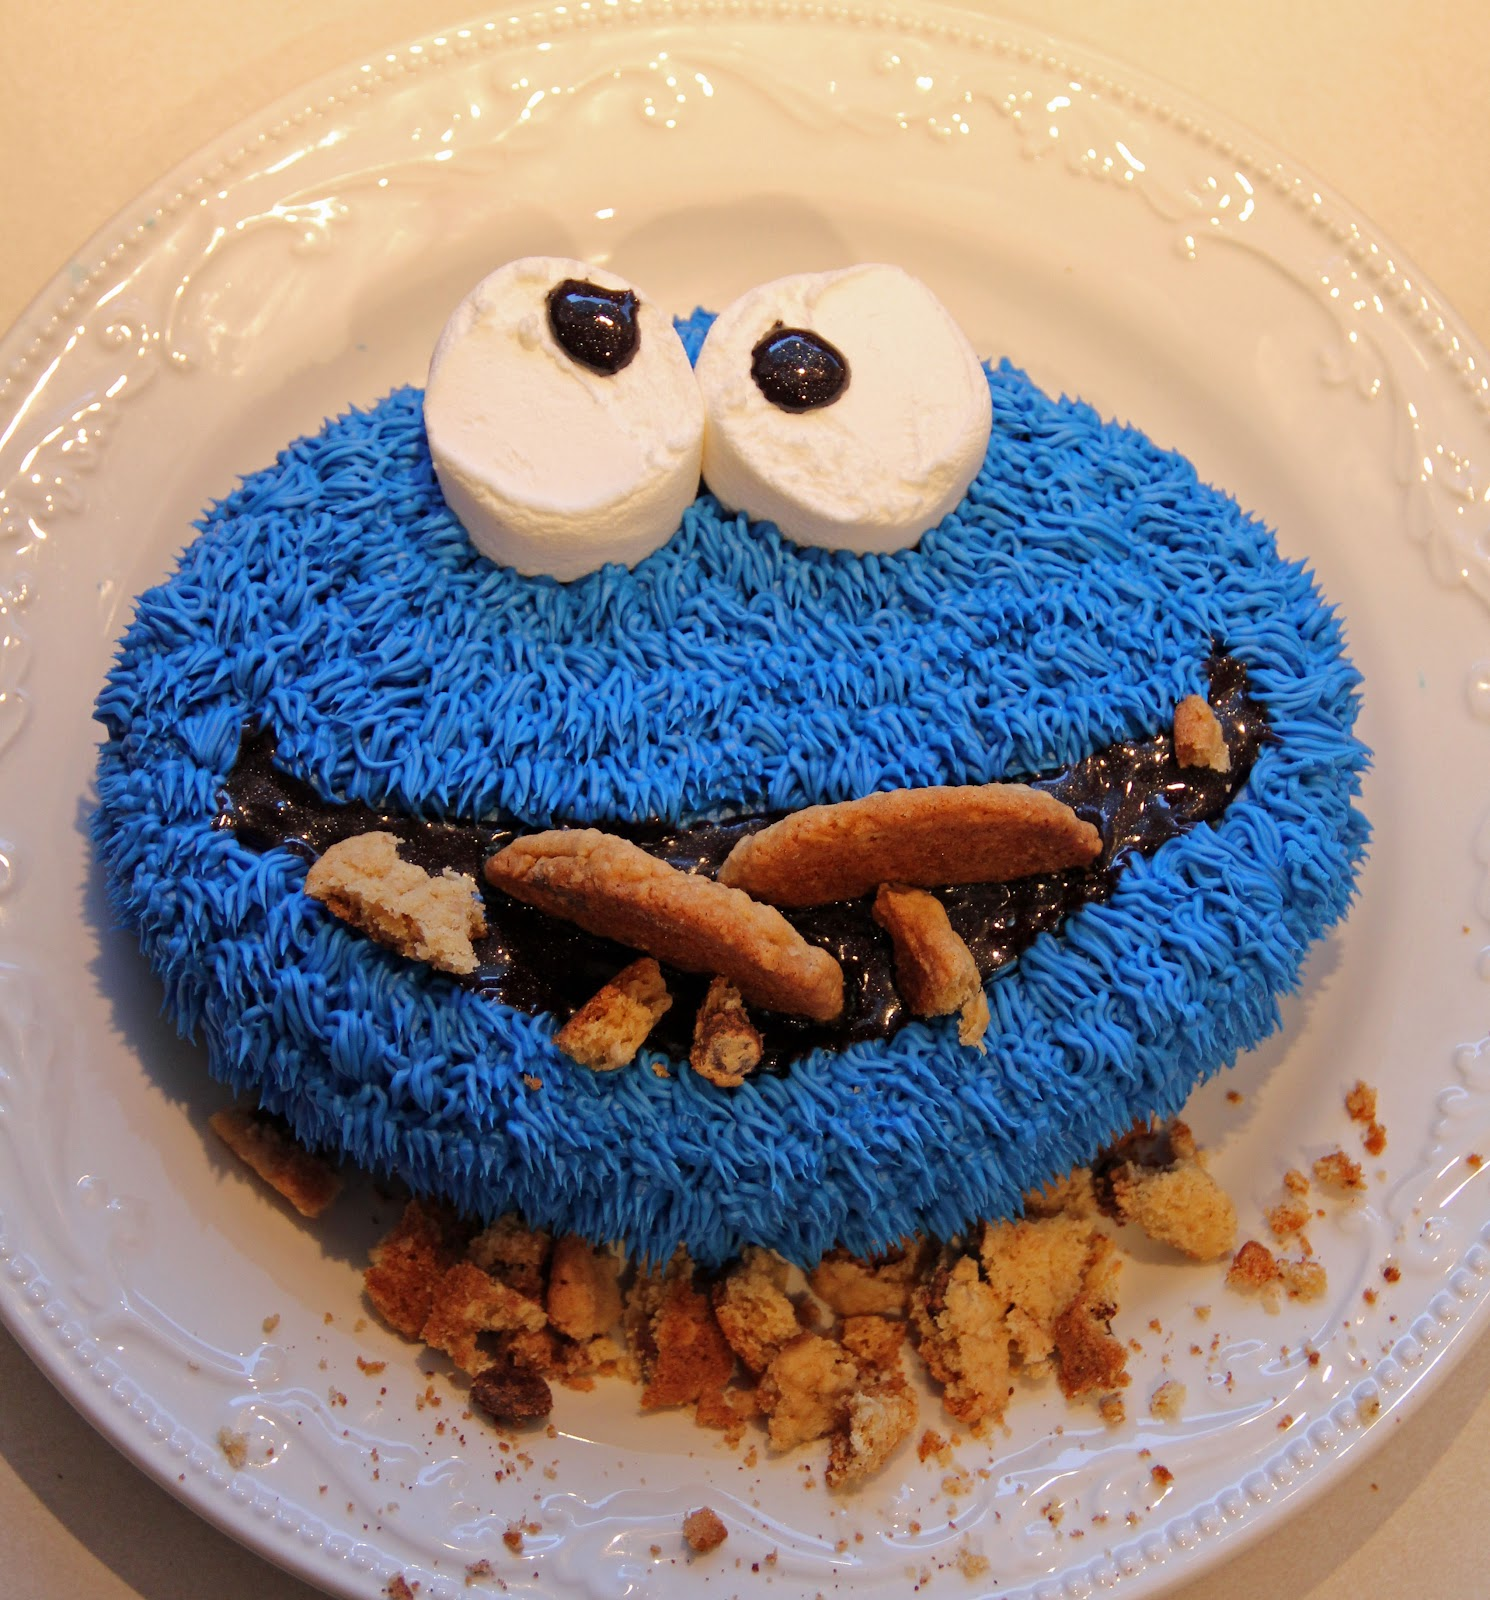 ... cookies monster blt monster eyeballs splendid cookie monster cookies